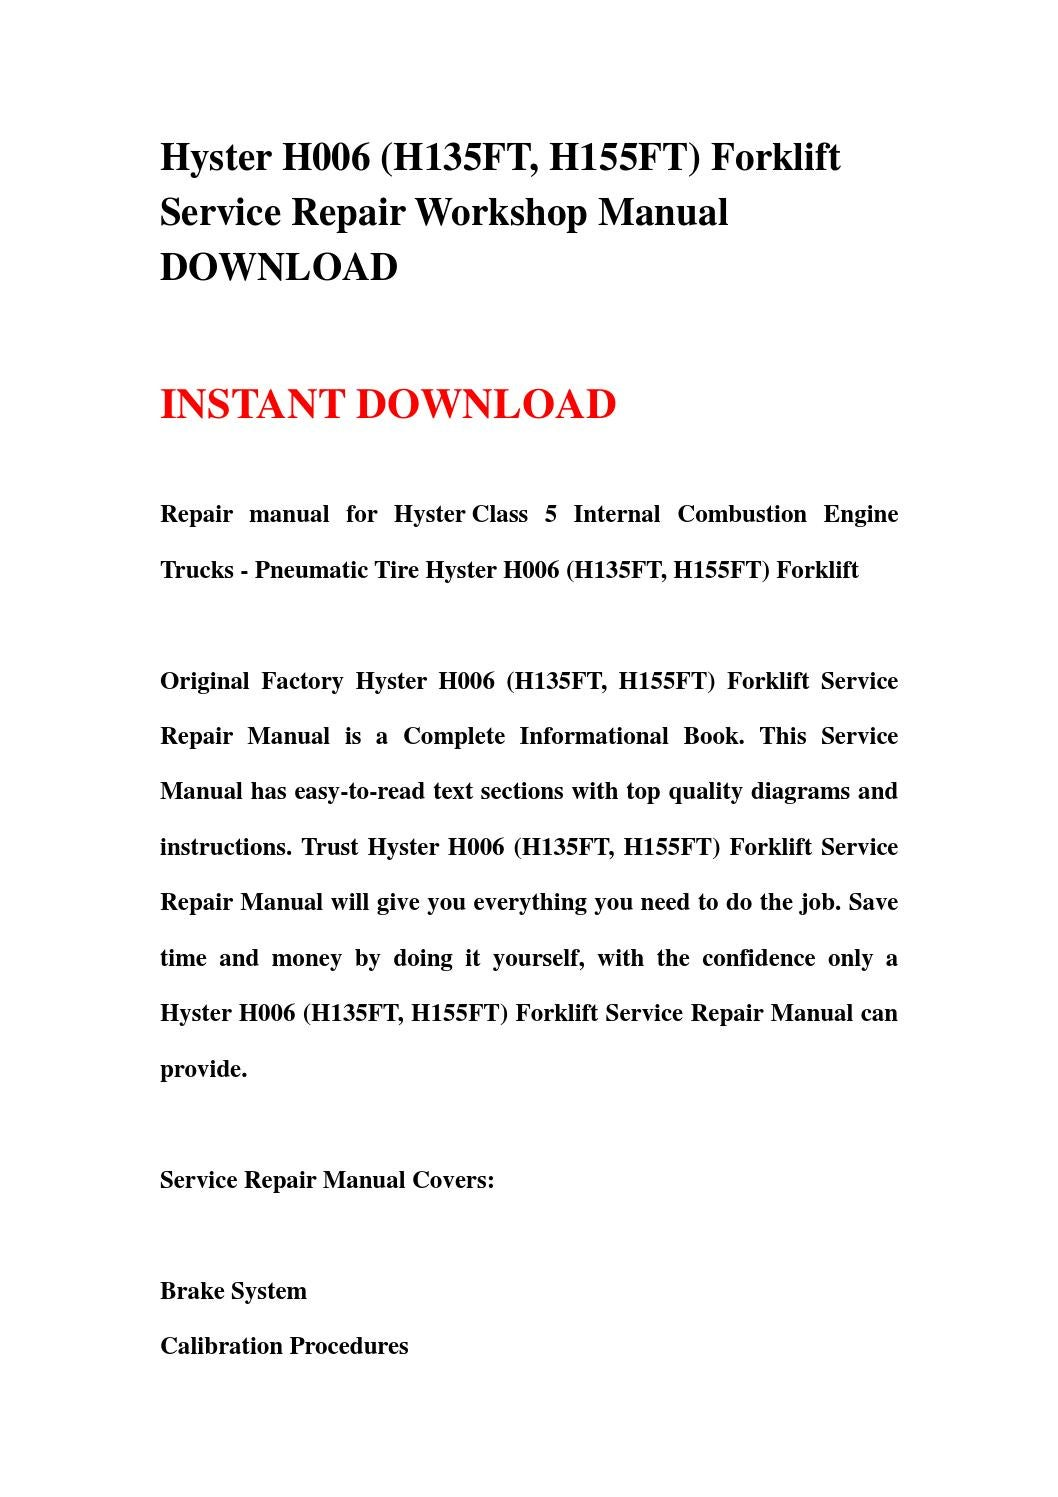 Hyster h006 (h135ft, h155ft) forklift service repair workshop manual  download by kmsjhgefjhe mfkjsenf - issuu